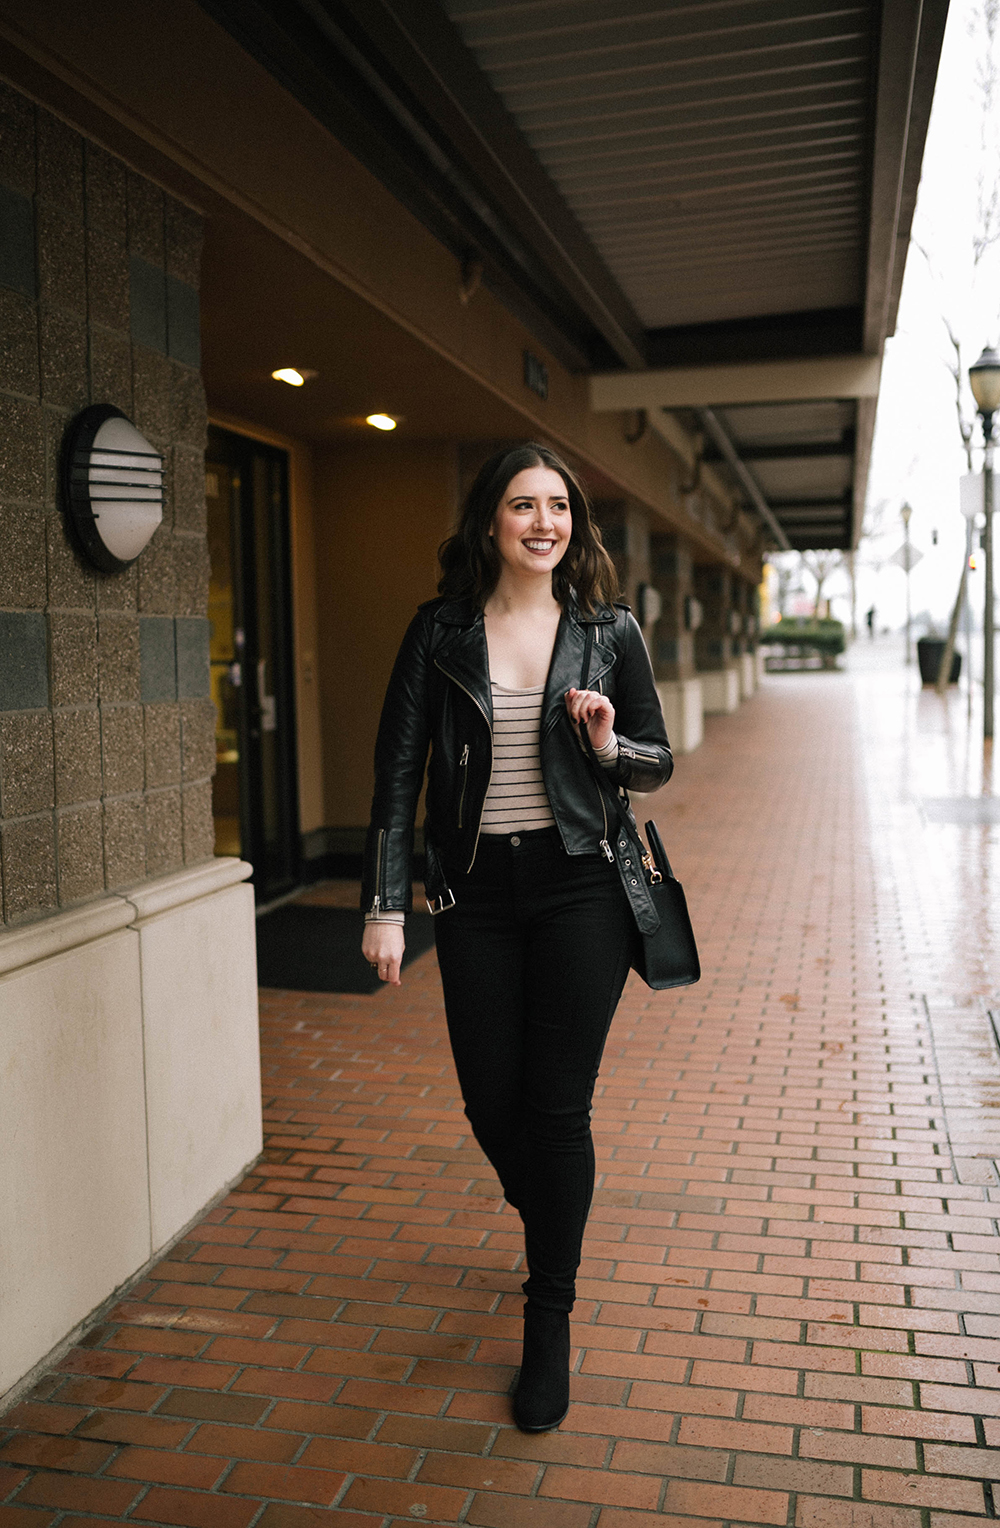 All Saints Balfern Leather Biker Jacket, Madewell Striped Bodysuit - Leather jacket outfit